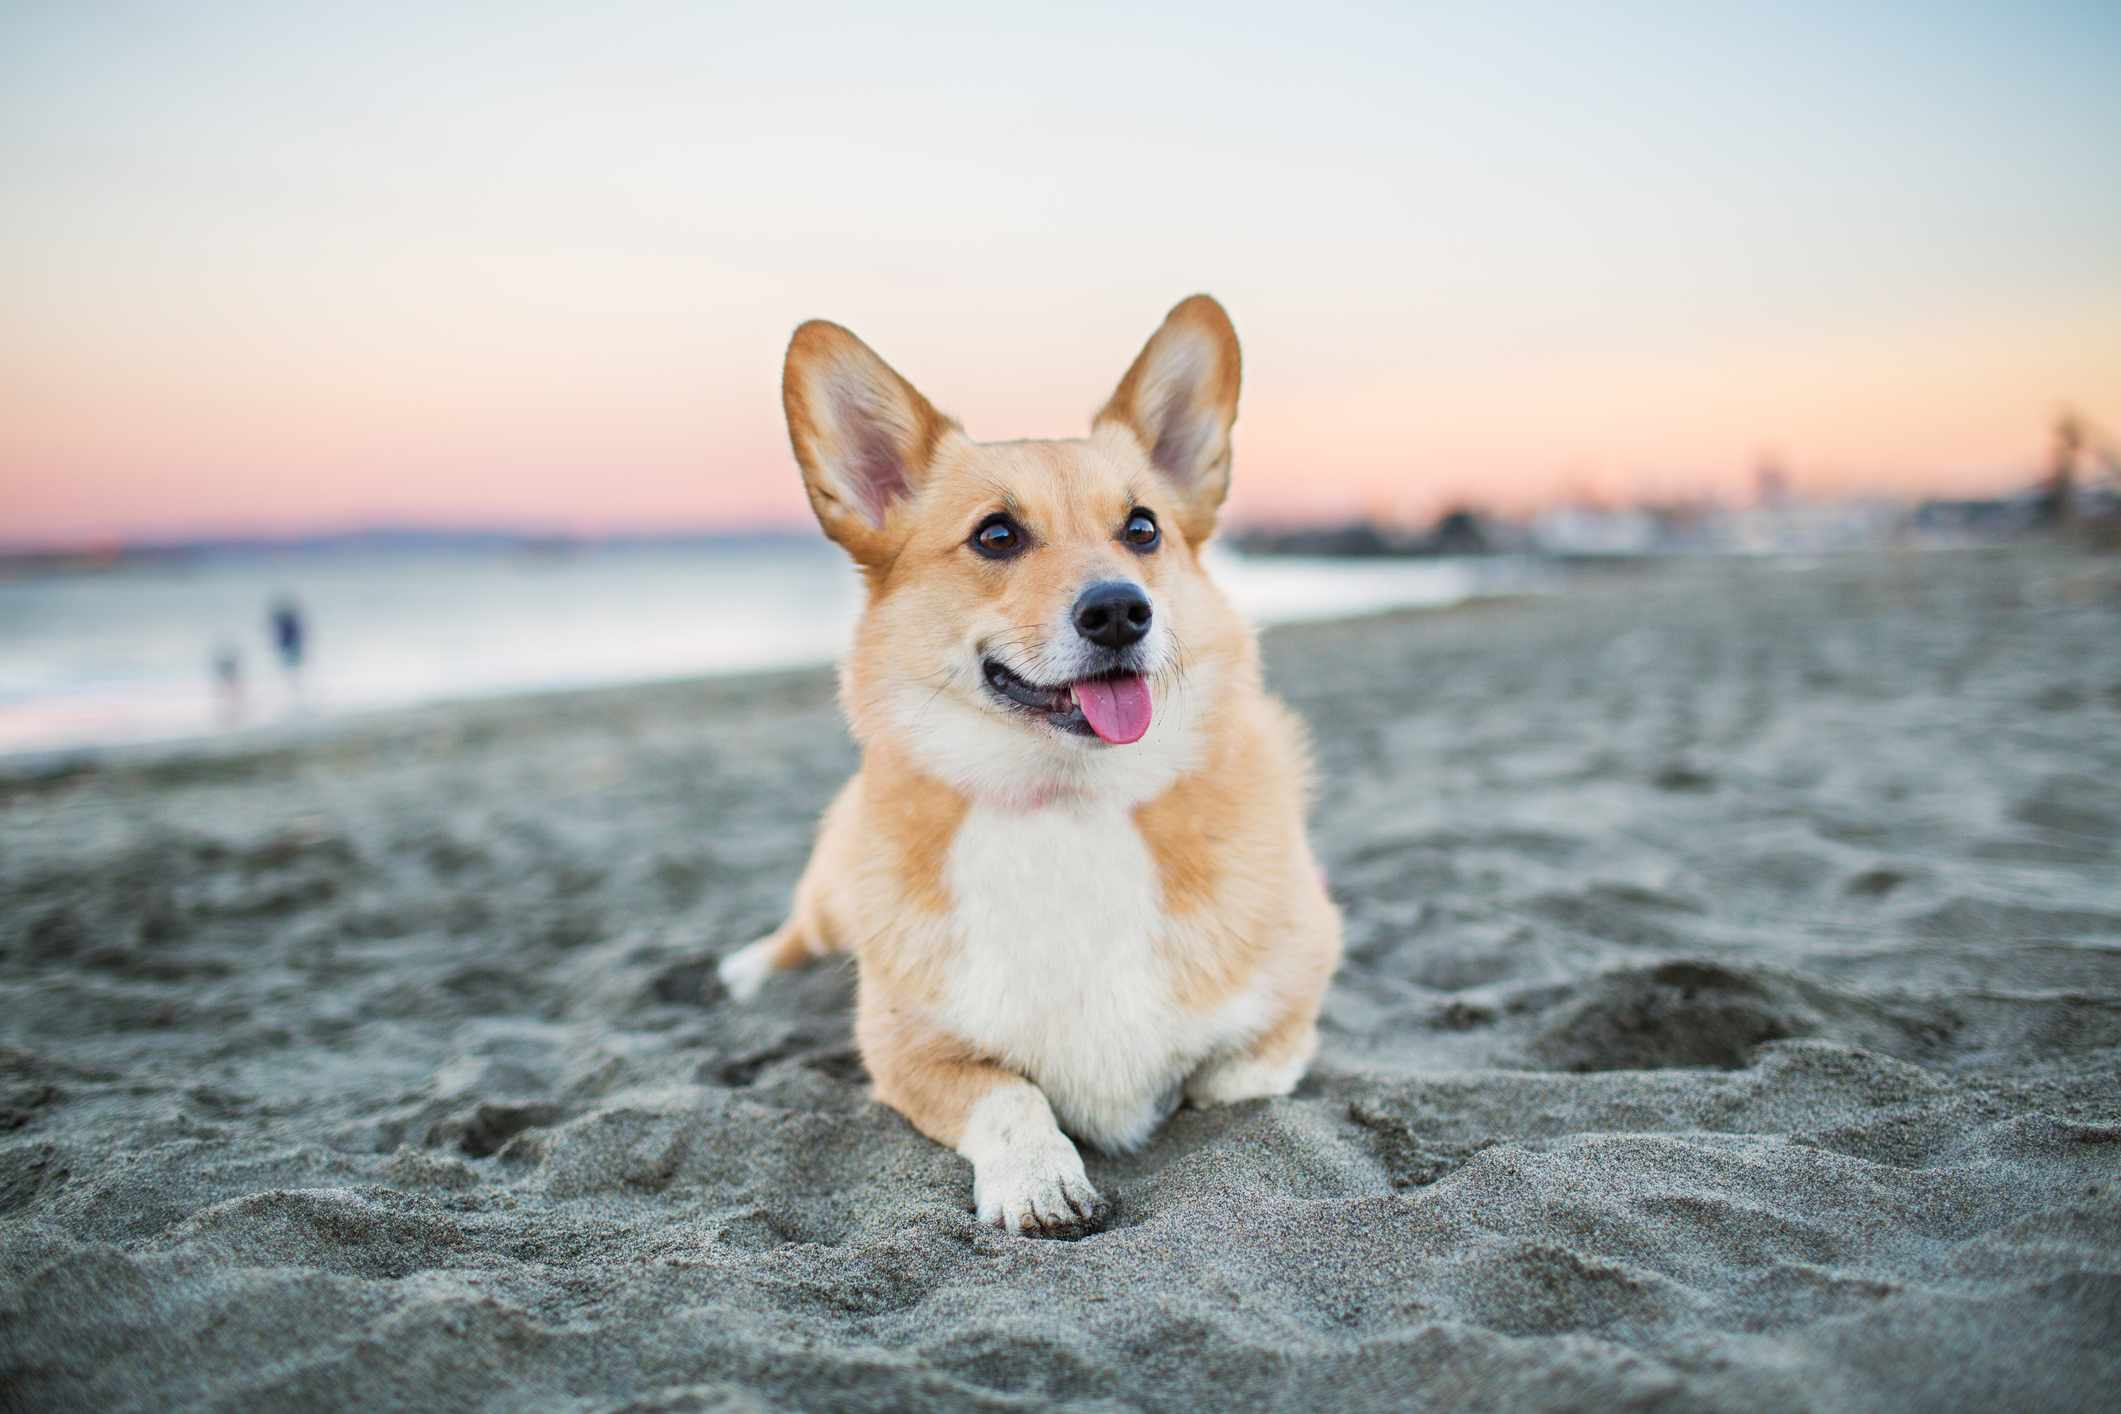 Pembroke Welsh Corgi lying on sand on a beach